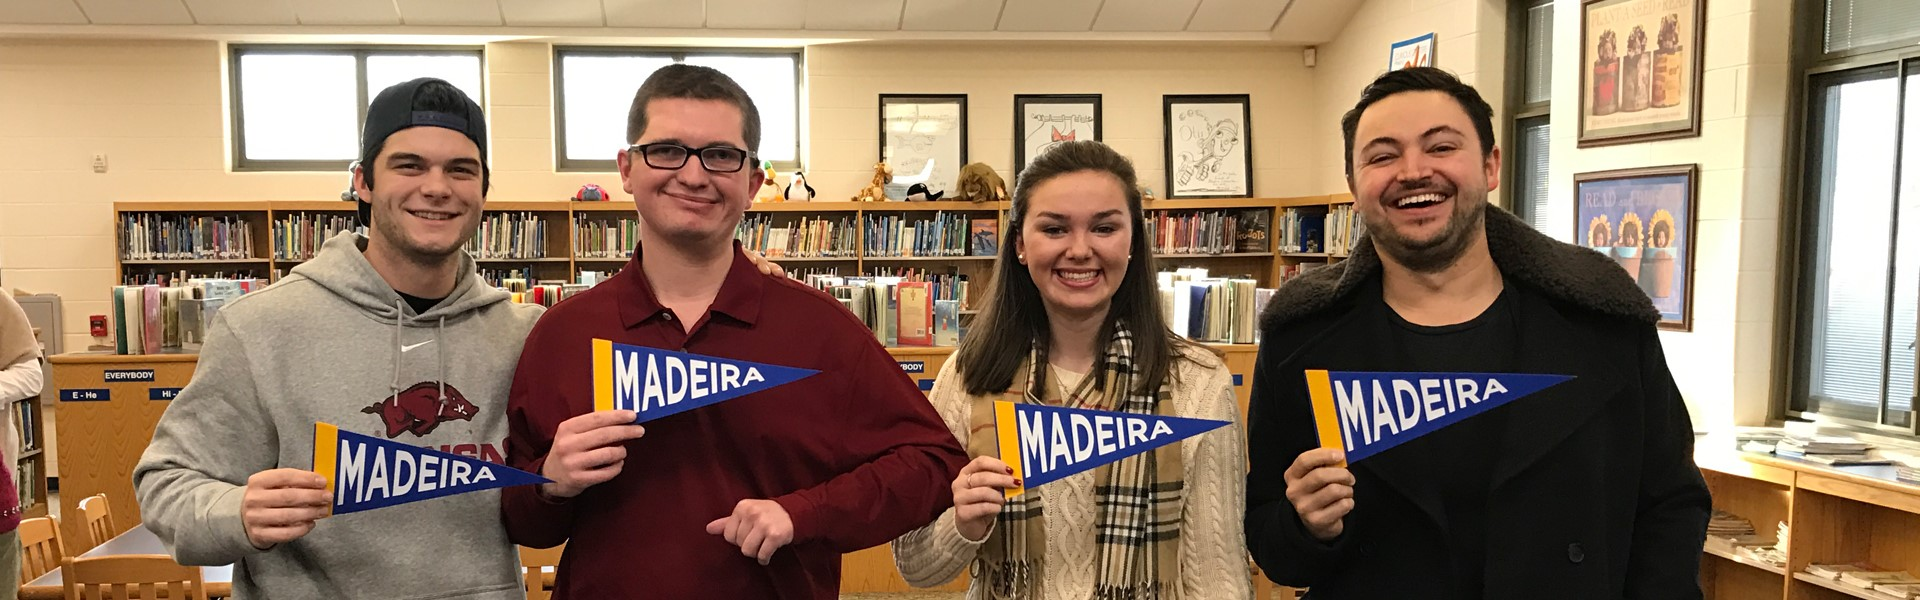 Madeira alumni Andrew Benintendi, Ryan Korengel, Maggie Griffin & Eli Maiman return to talk to our 3rd & 4th graders about perseverance #madeirastrong READ MORE BELOW...